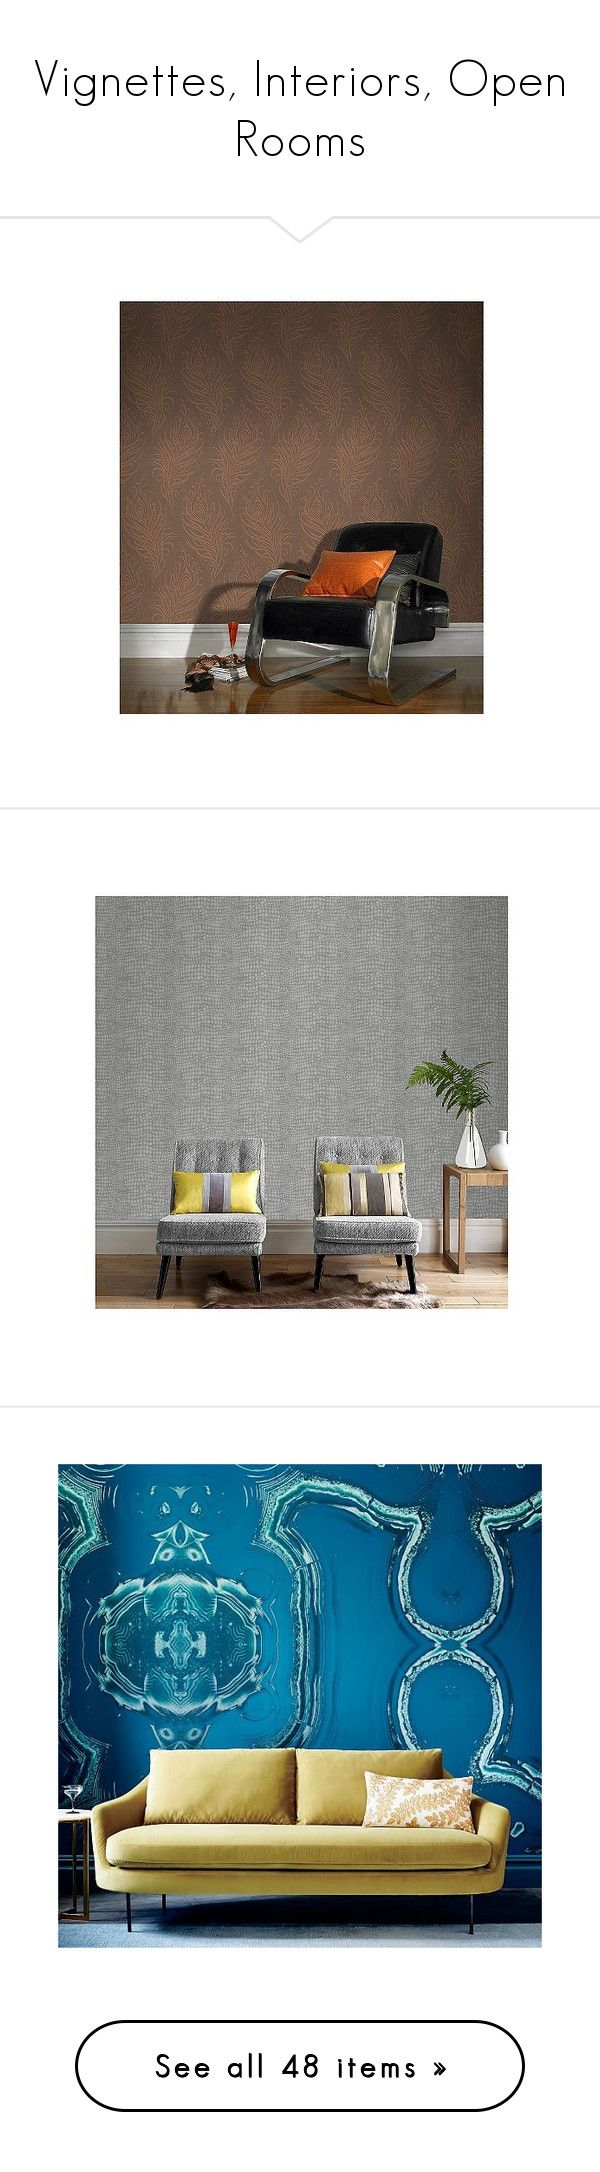 """""""Vignettes, Interiors, Open Rooms"""" by s-p-j ❤ liked on Polyvore featuring home, home decor, wallpaper, gold, shimmer wallpaper, graham brown wallpaper, grey, grey textured wallpaper, gray textured wallpaper and textured wallpaper"""